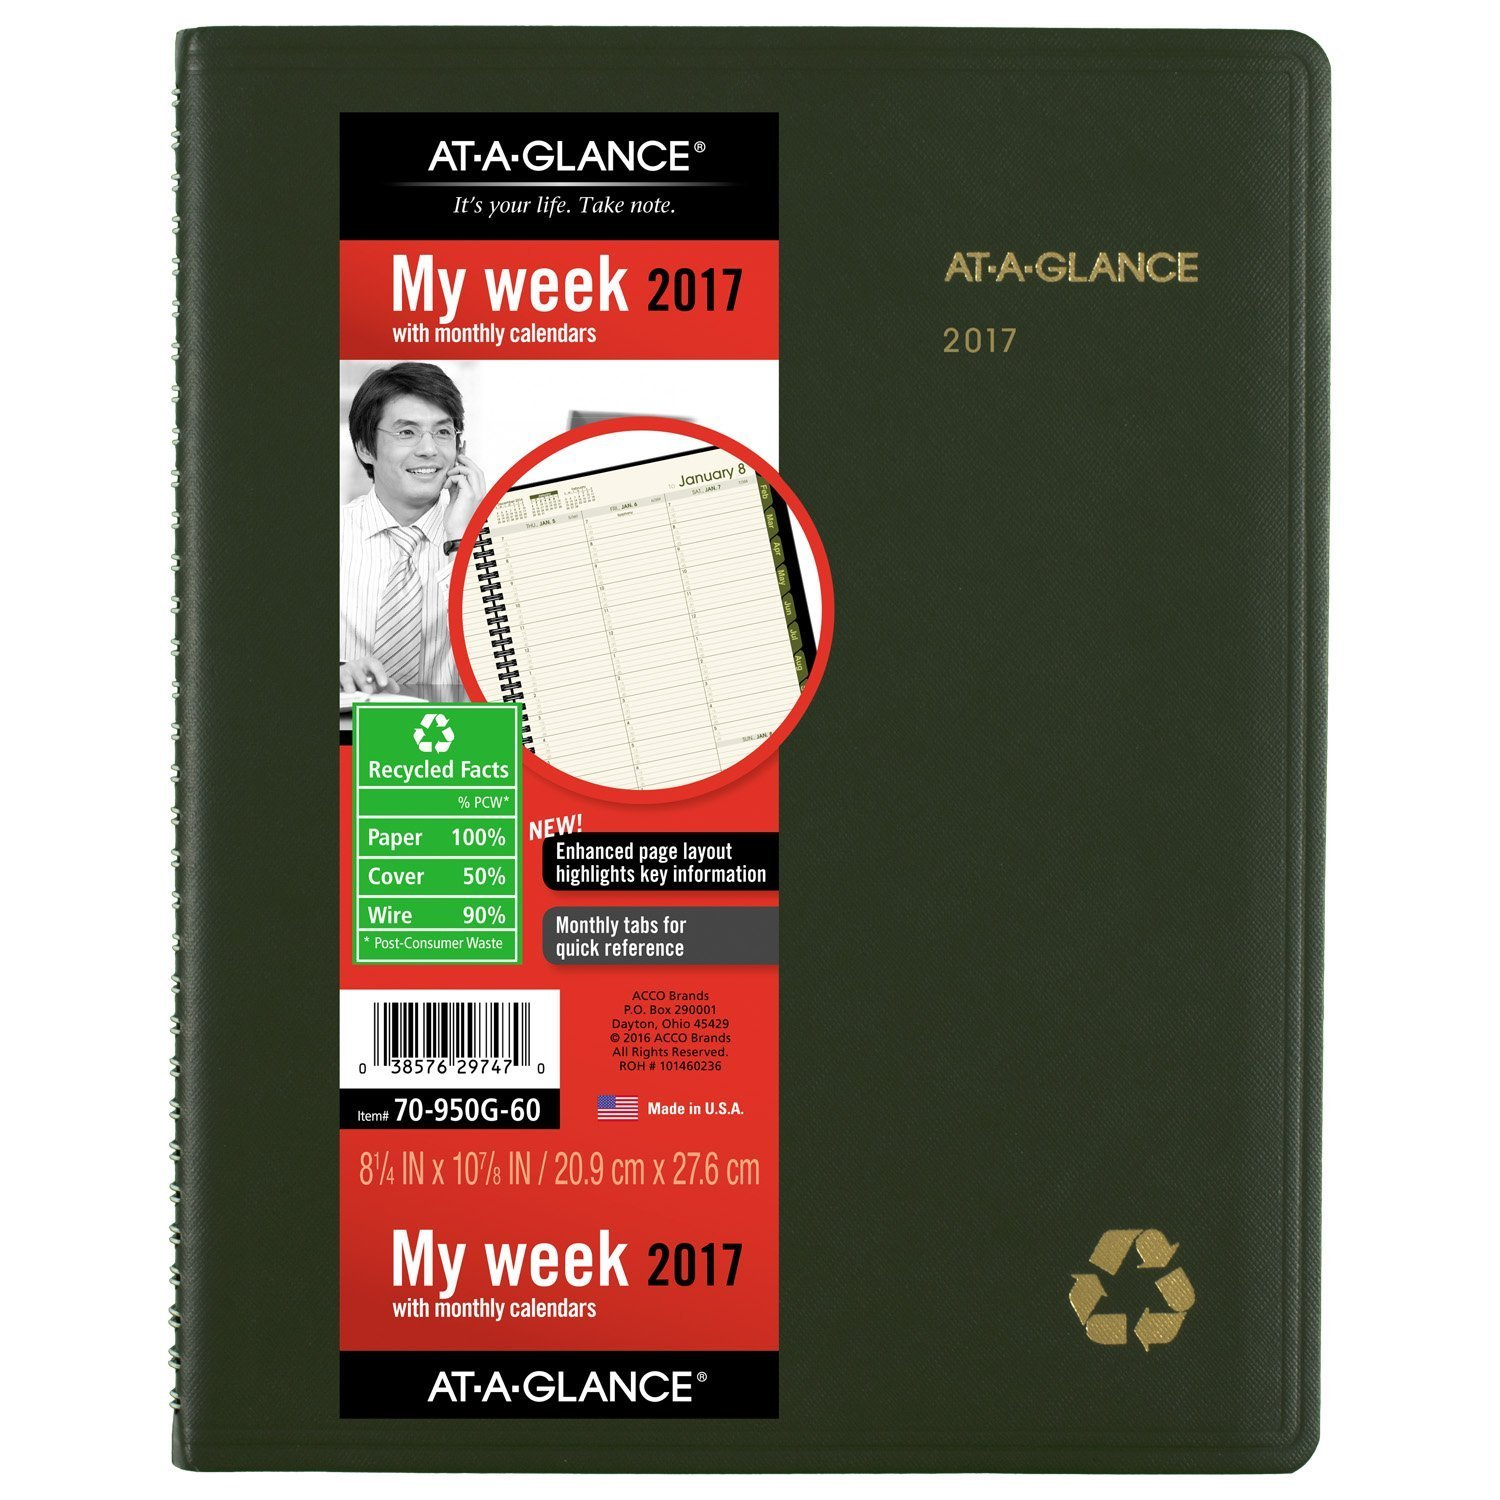 "AT-A-GLANCE Weekly / Monthly Appointment Book / Planner 2017, Recycled, 8-1/4 x 10-7/8"", Green (70-950G-60)"